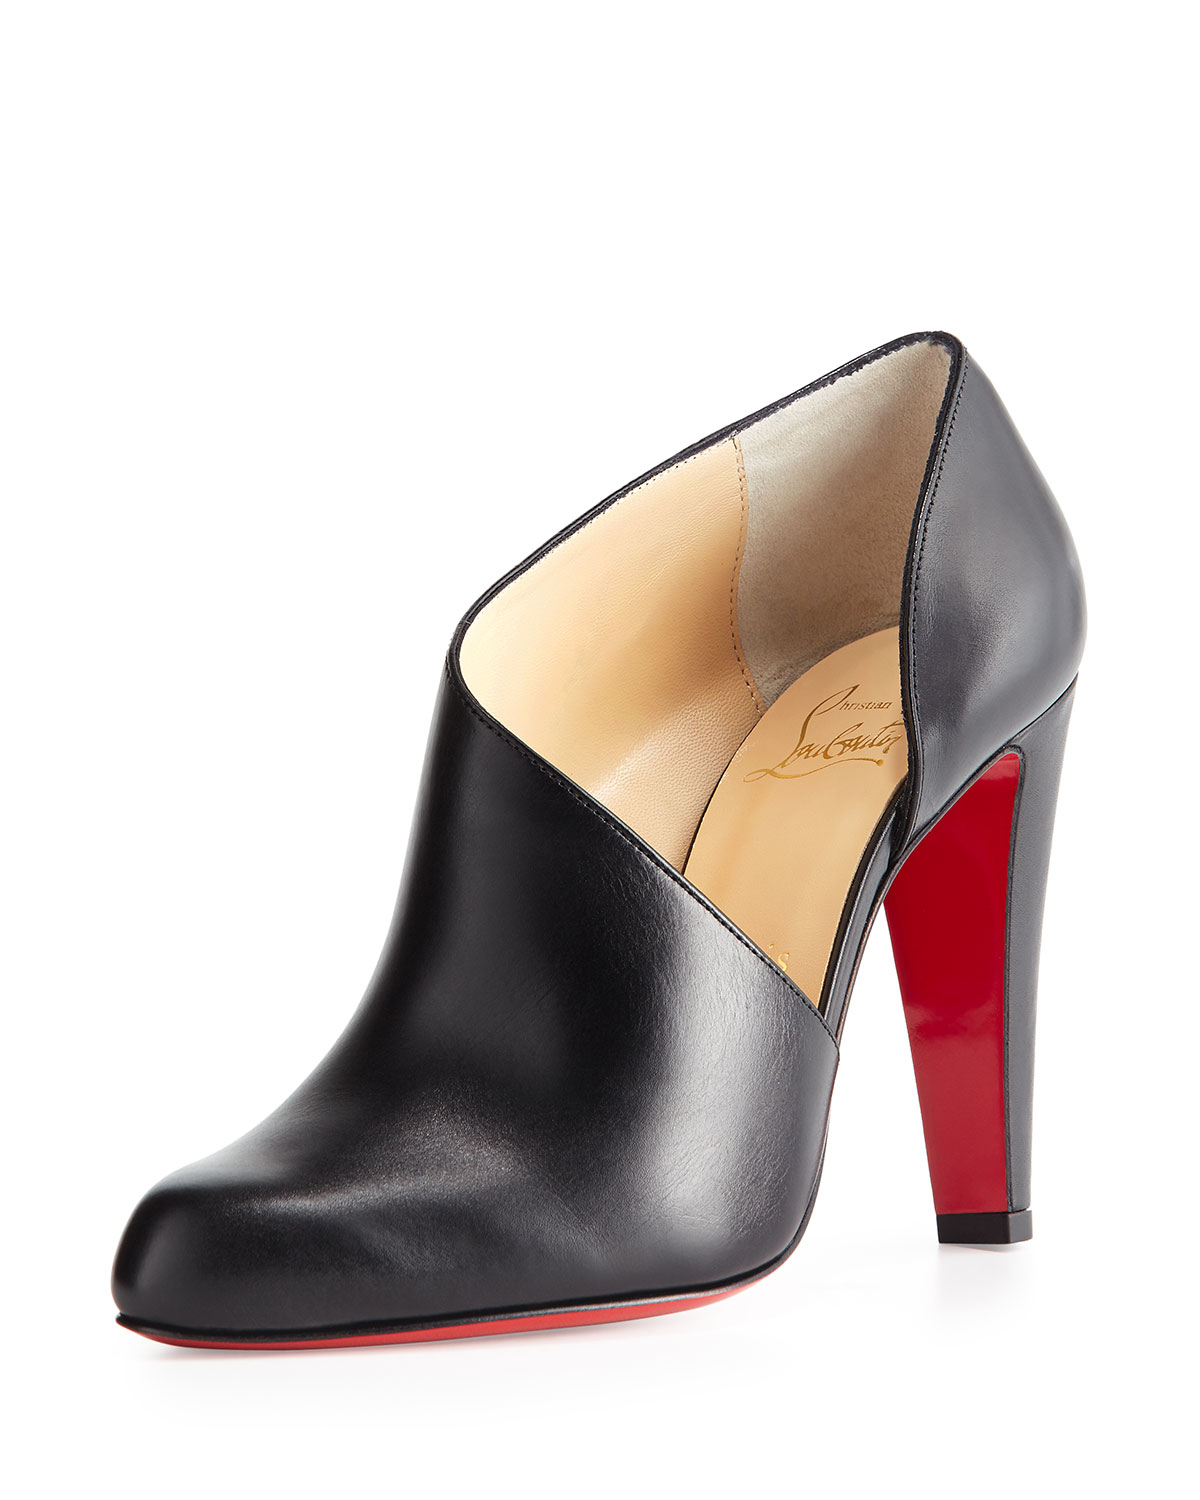 0087a09be8a8 Lyst - Christian Louboutin Half-D Orsay Leather Red-Soled Boots in Black